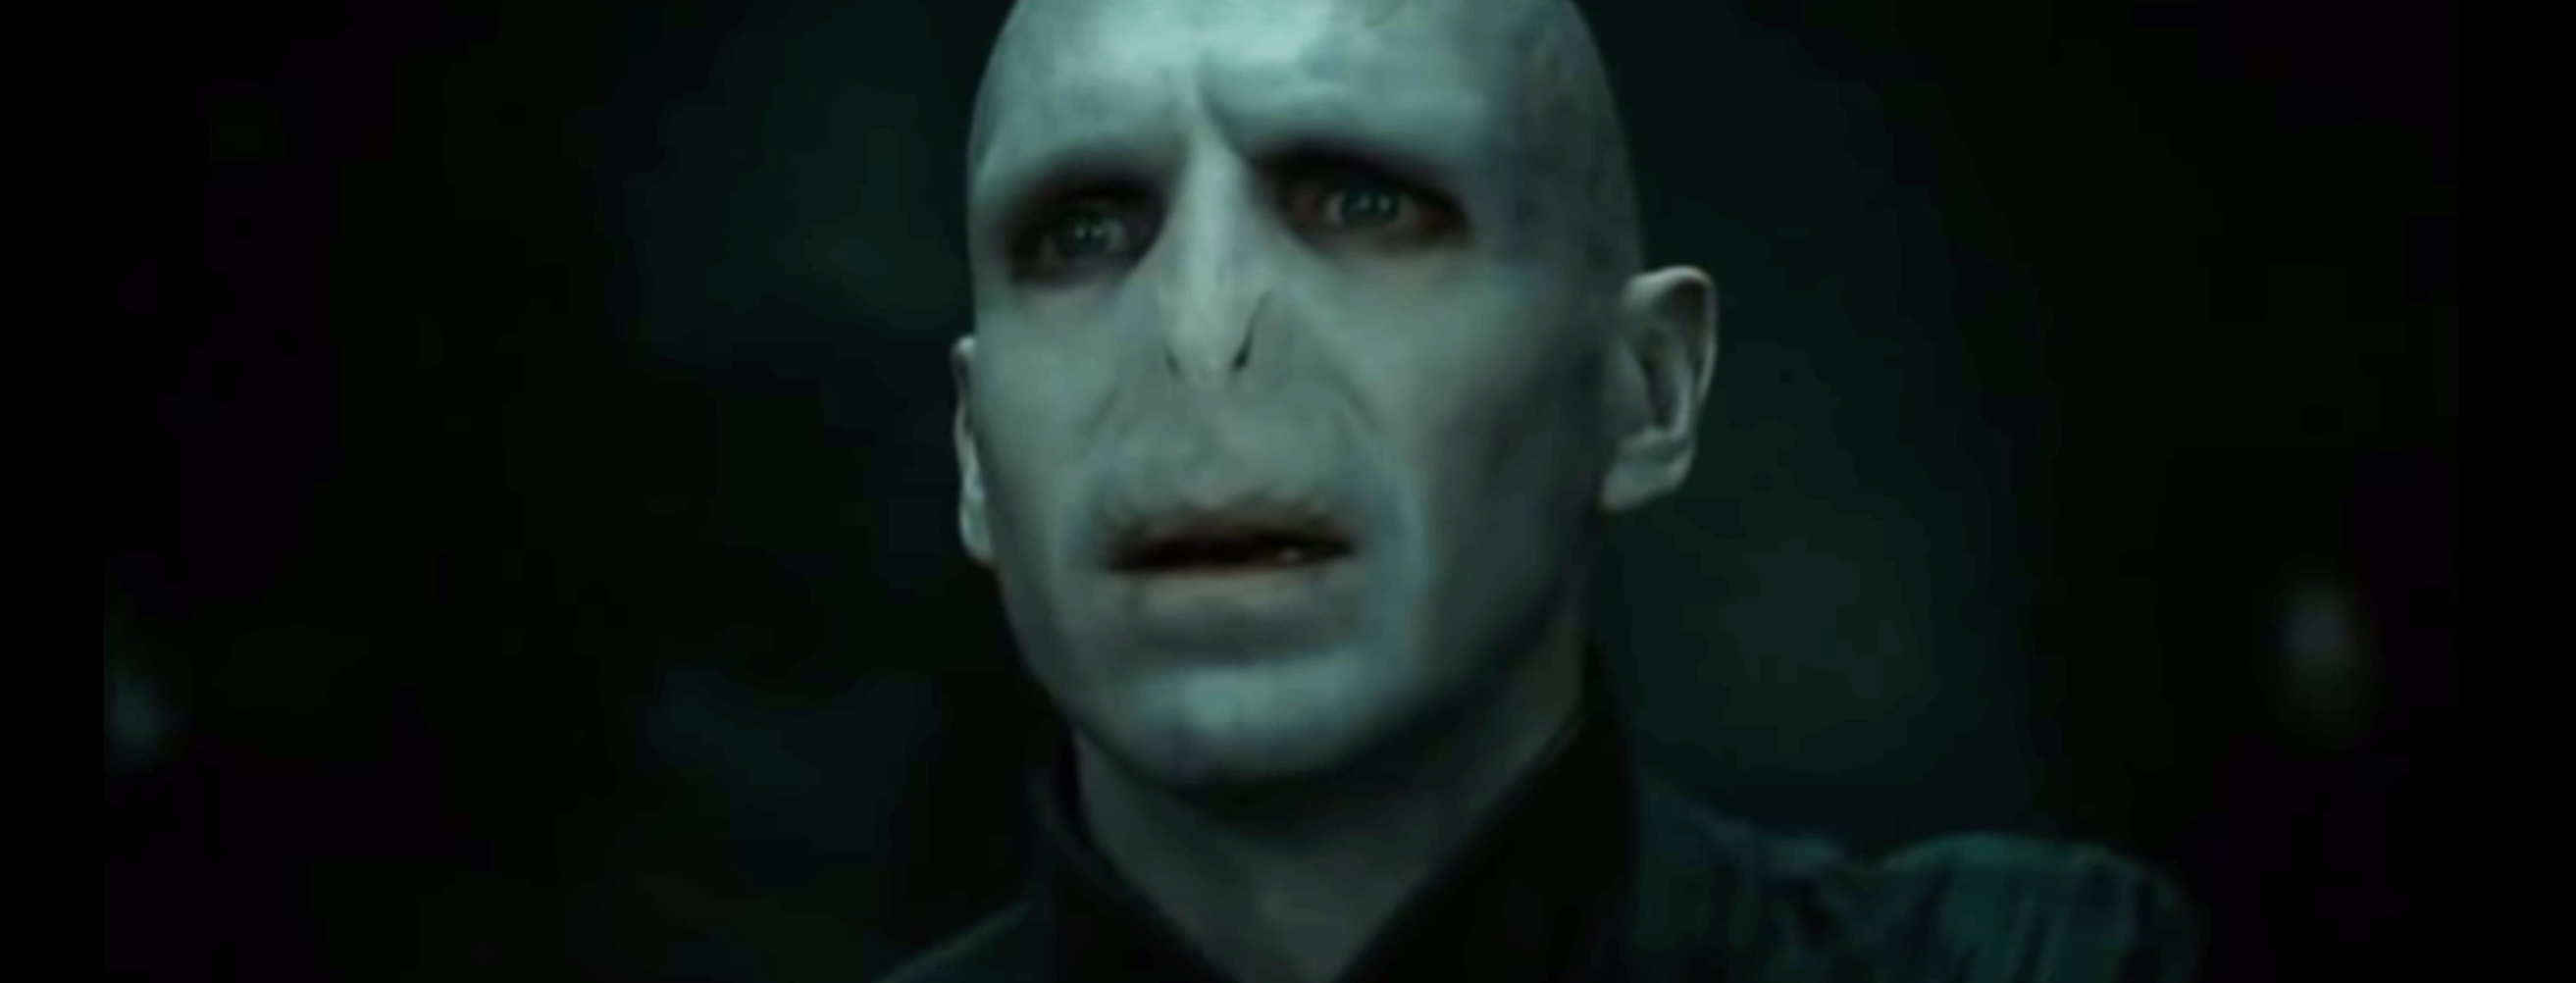 Voldemort staring at Harry, eager to end him at long last